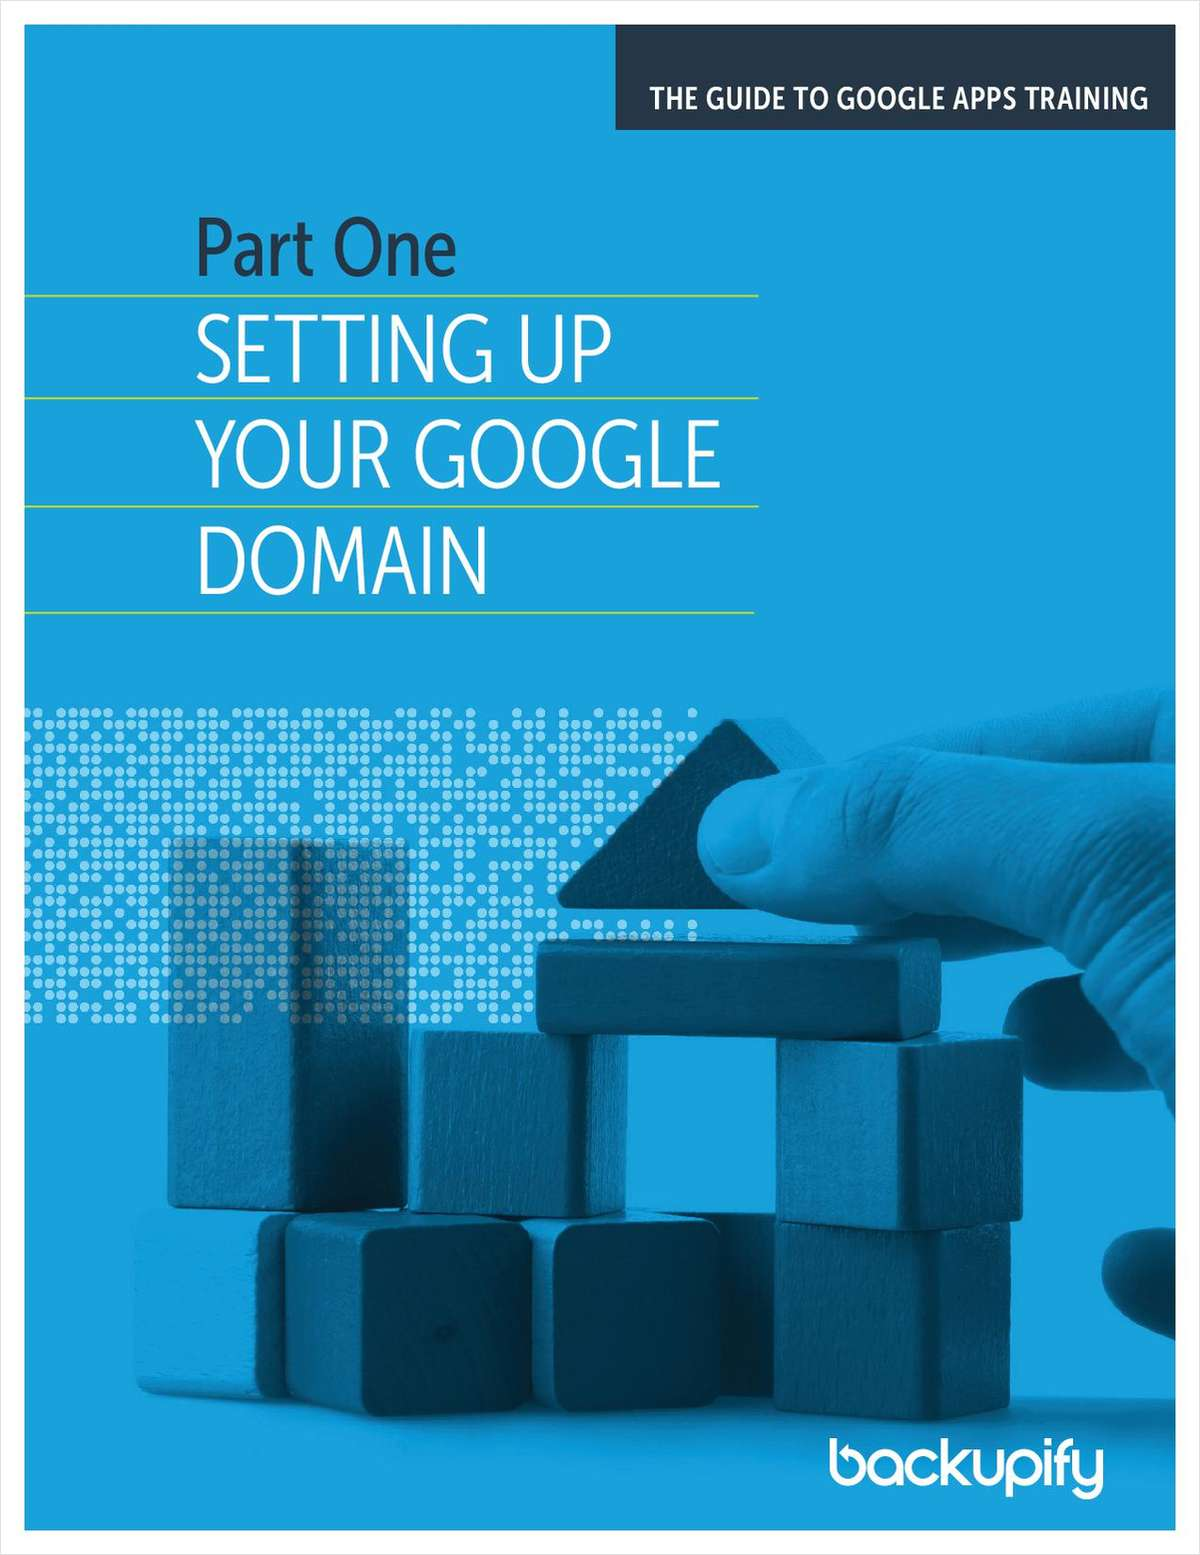 The Guide To Google Apps Training